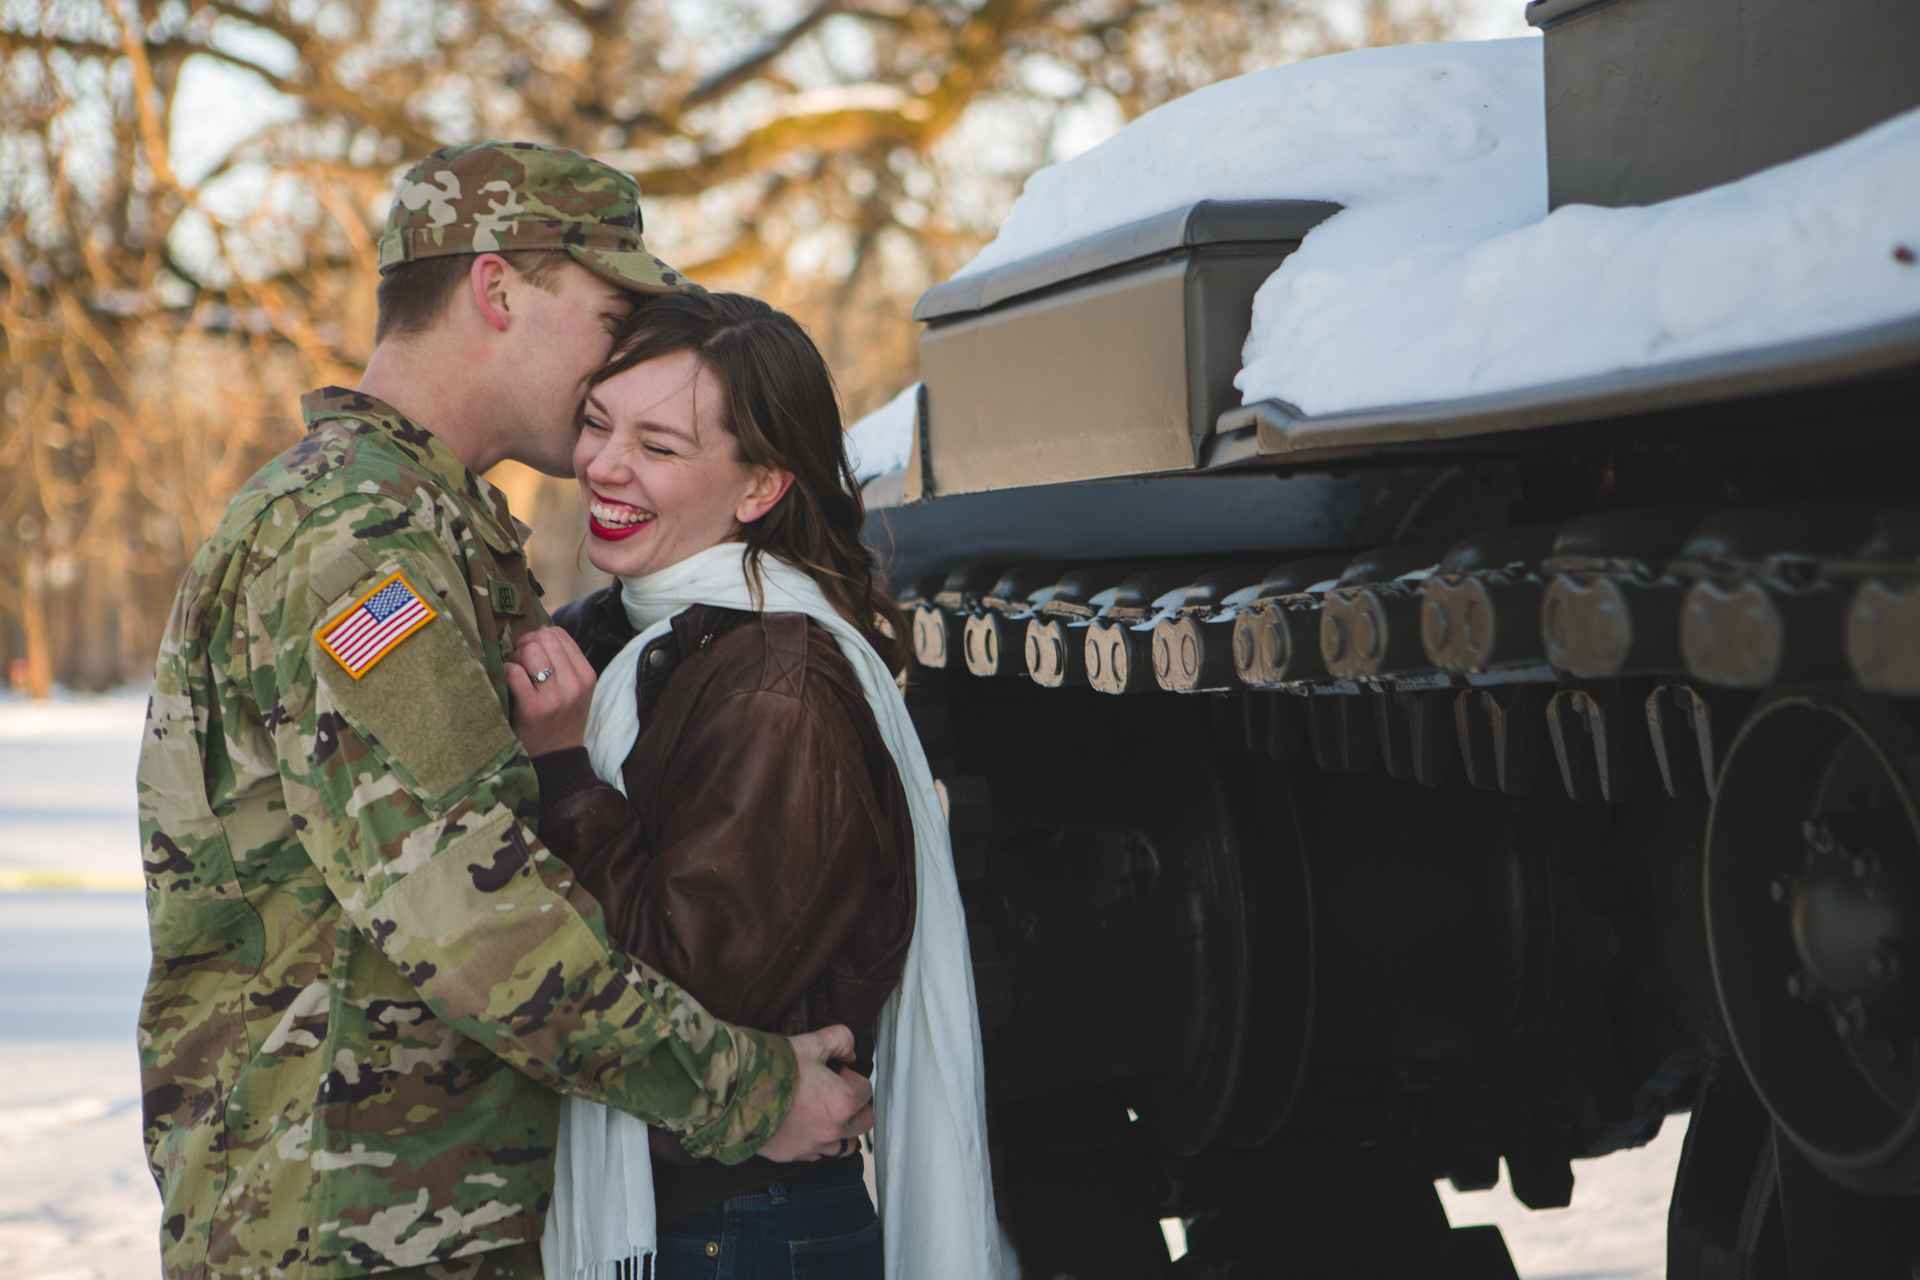 military engagement pictures cantigny wheaton illinois army national guard winter christmas snow batavia riverwalk riverfront-30.jpg